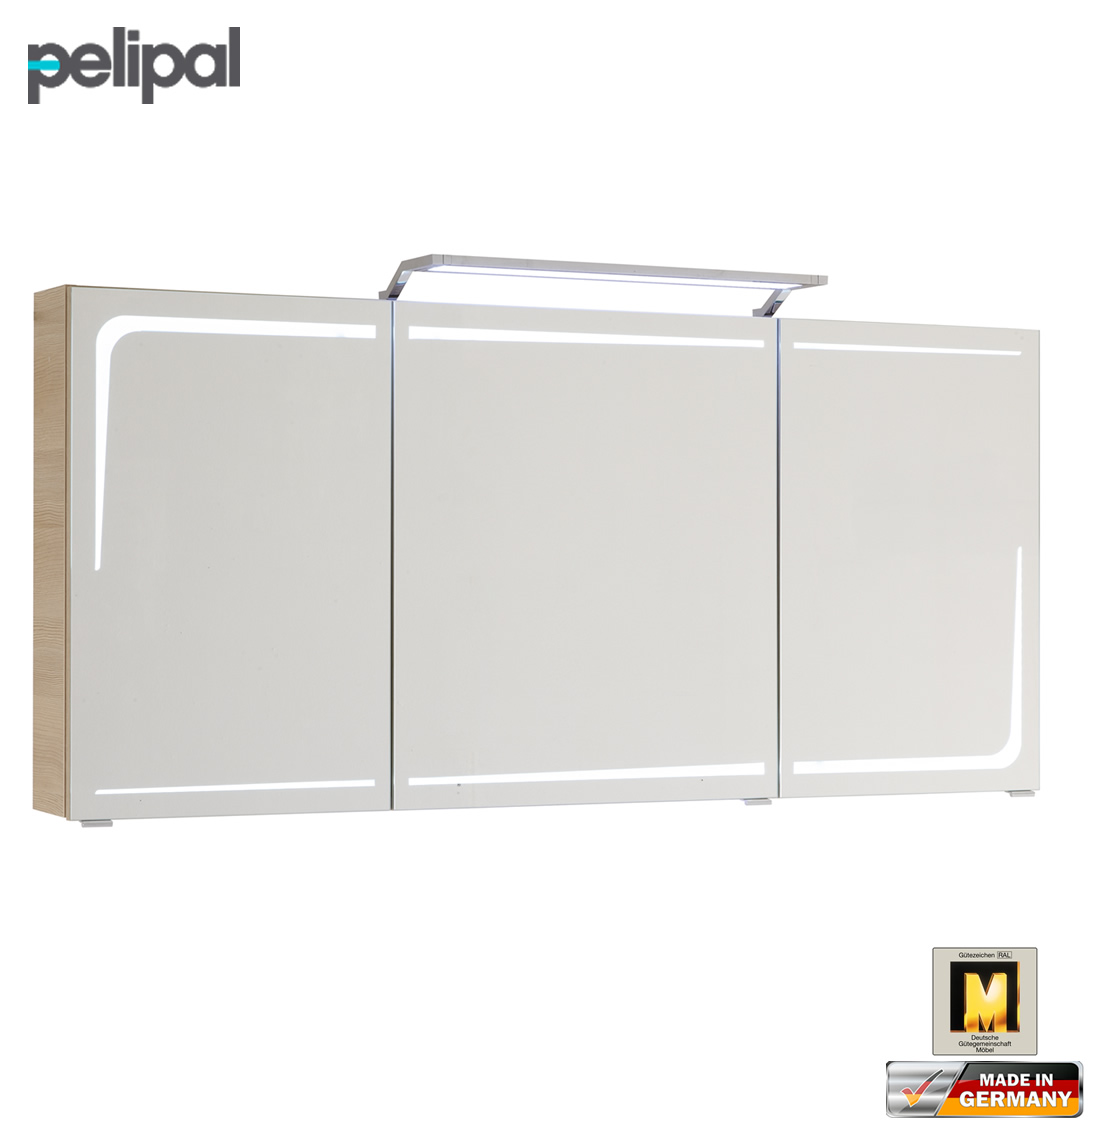 pelipal solitaire 7005 spiegelschrank 150 cm rd sps 06 impuls home. Black Bedroom Furniture Sets. Home Design Ideas